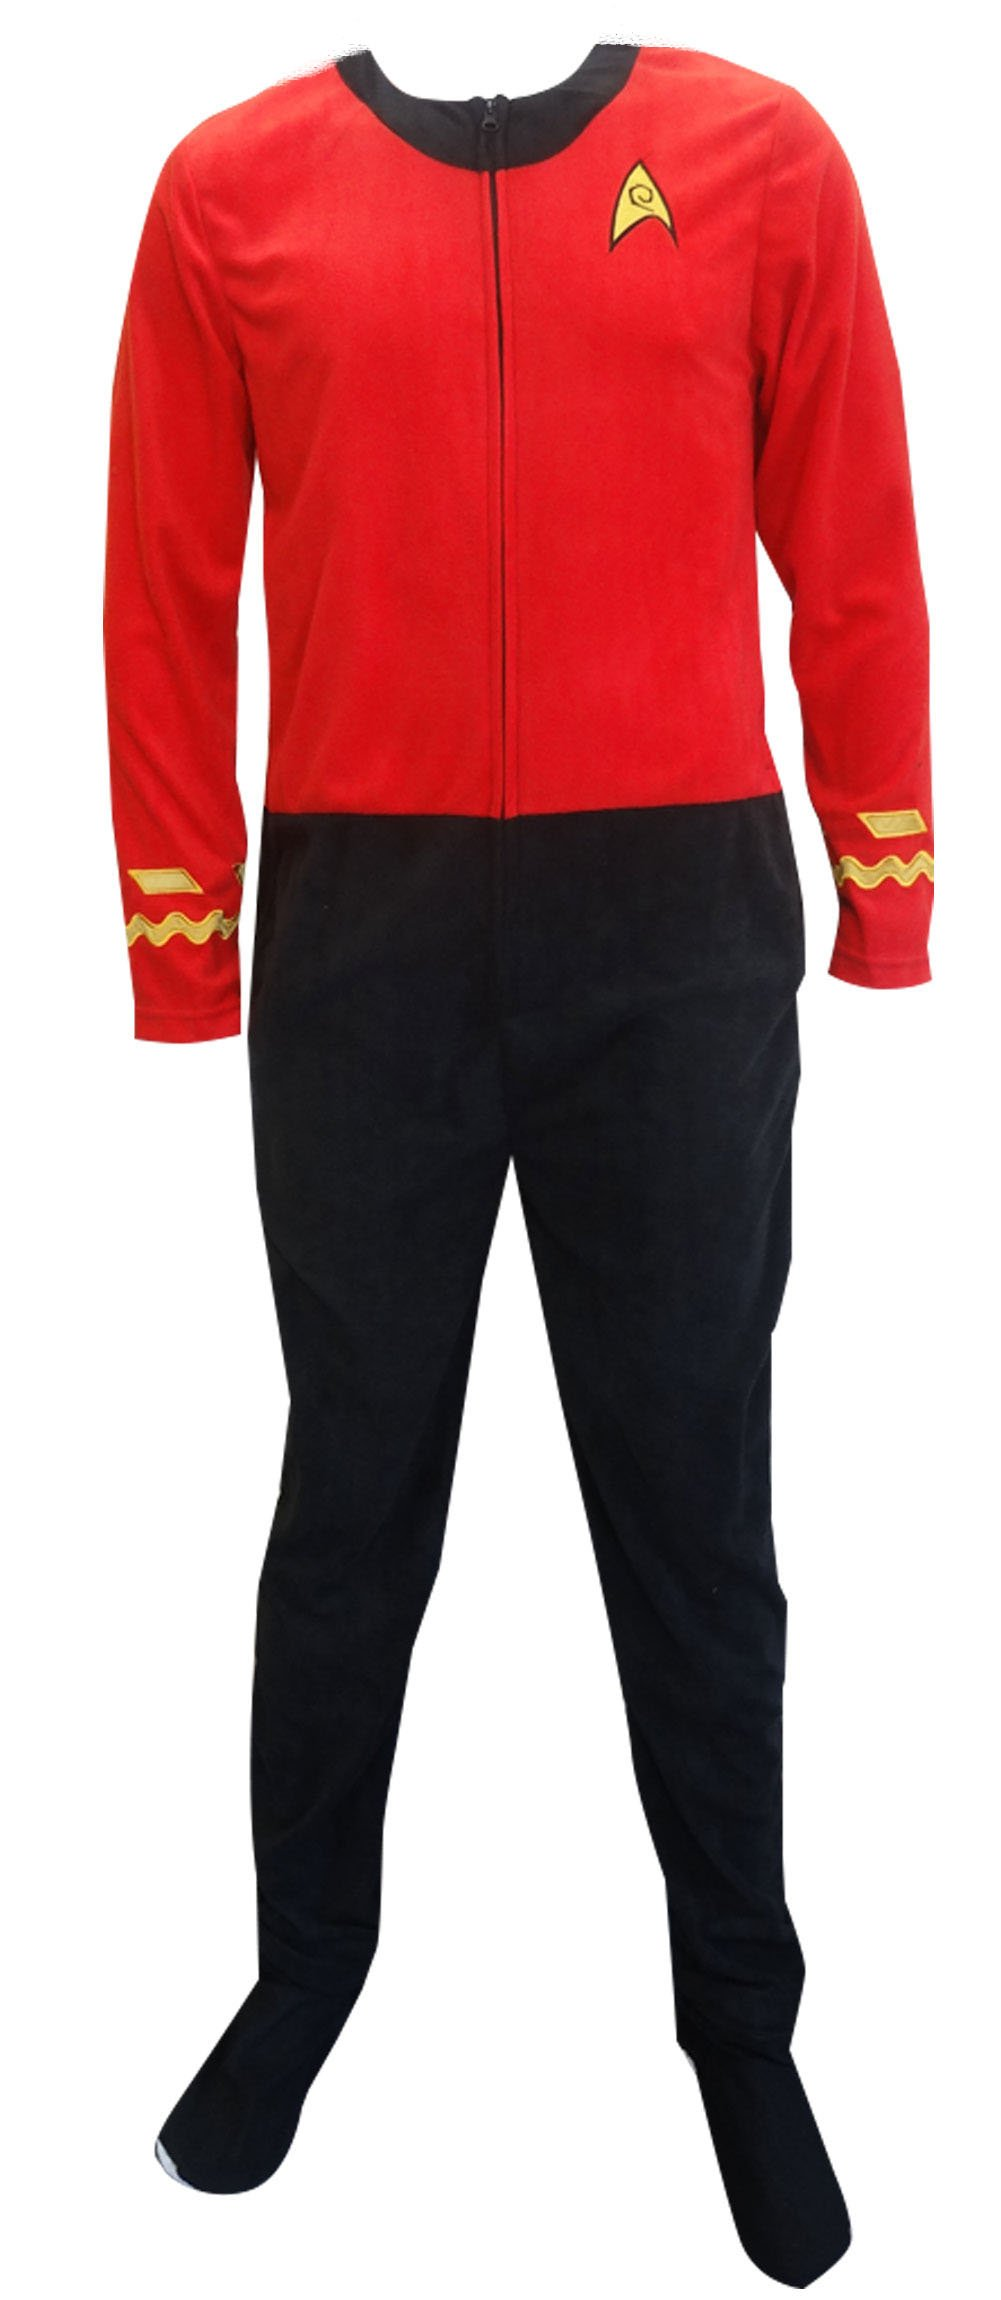 Star Trek Scotty Red Engineering Uniform Onesie Pajama